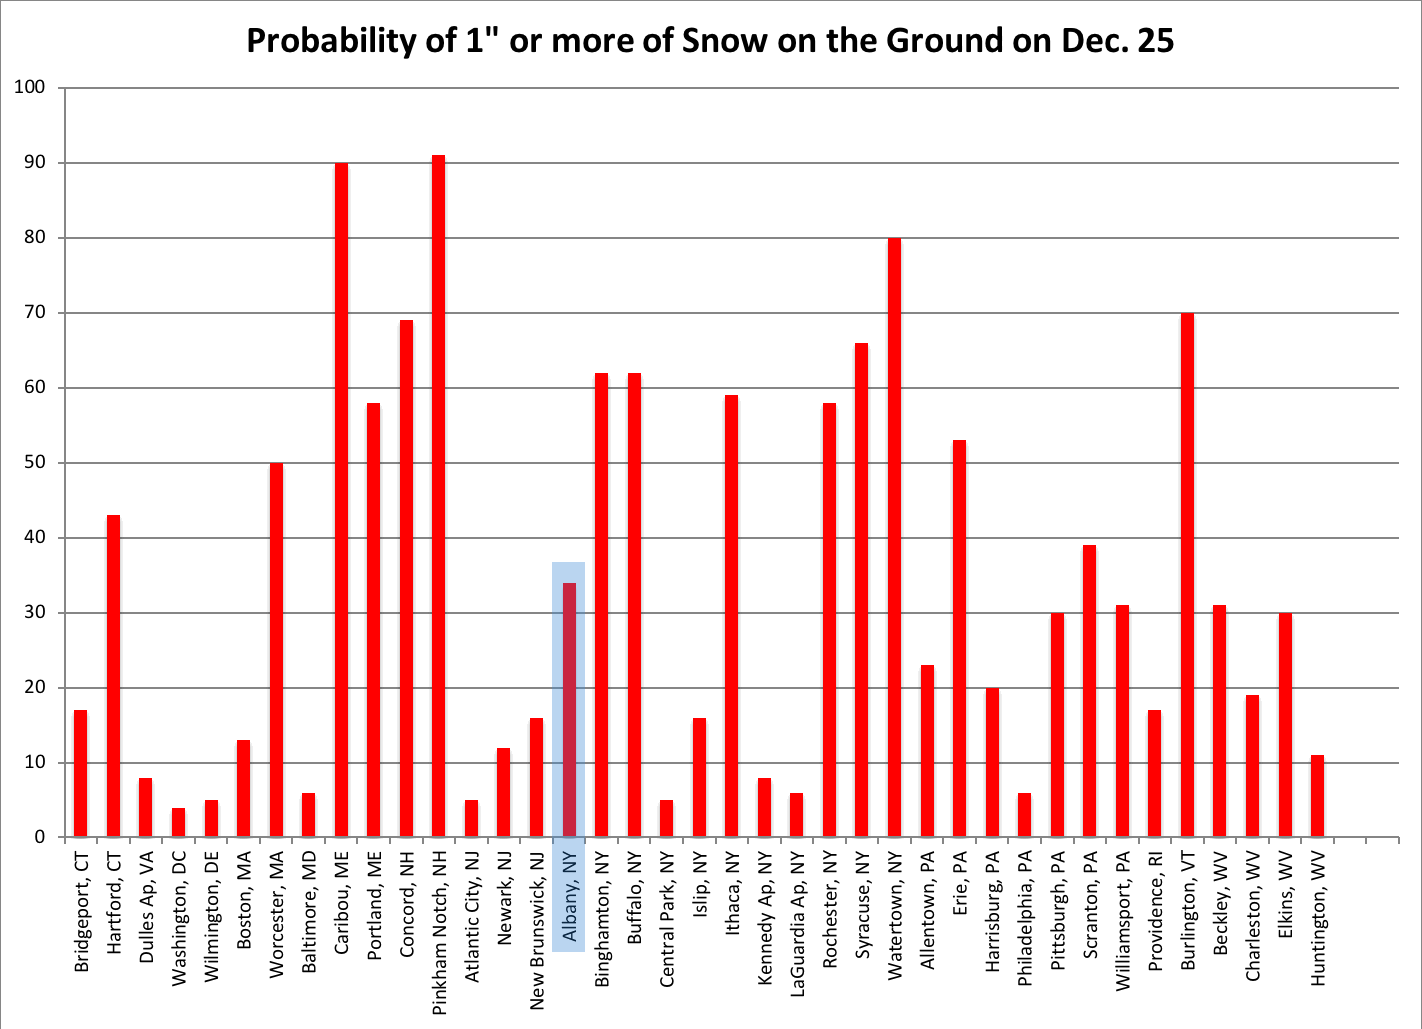 NRCC Northeast probability white Christmas